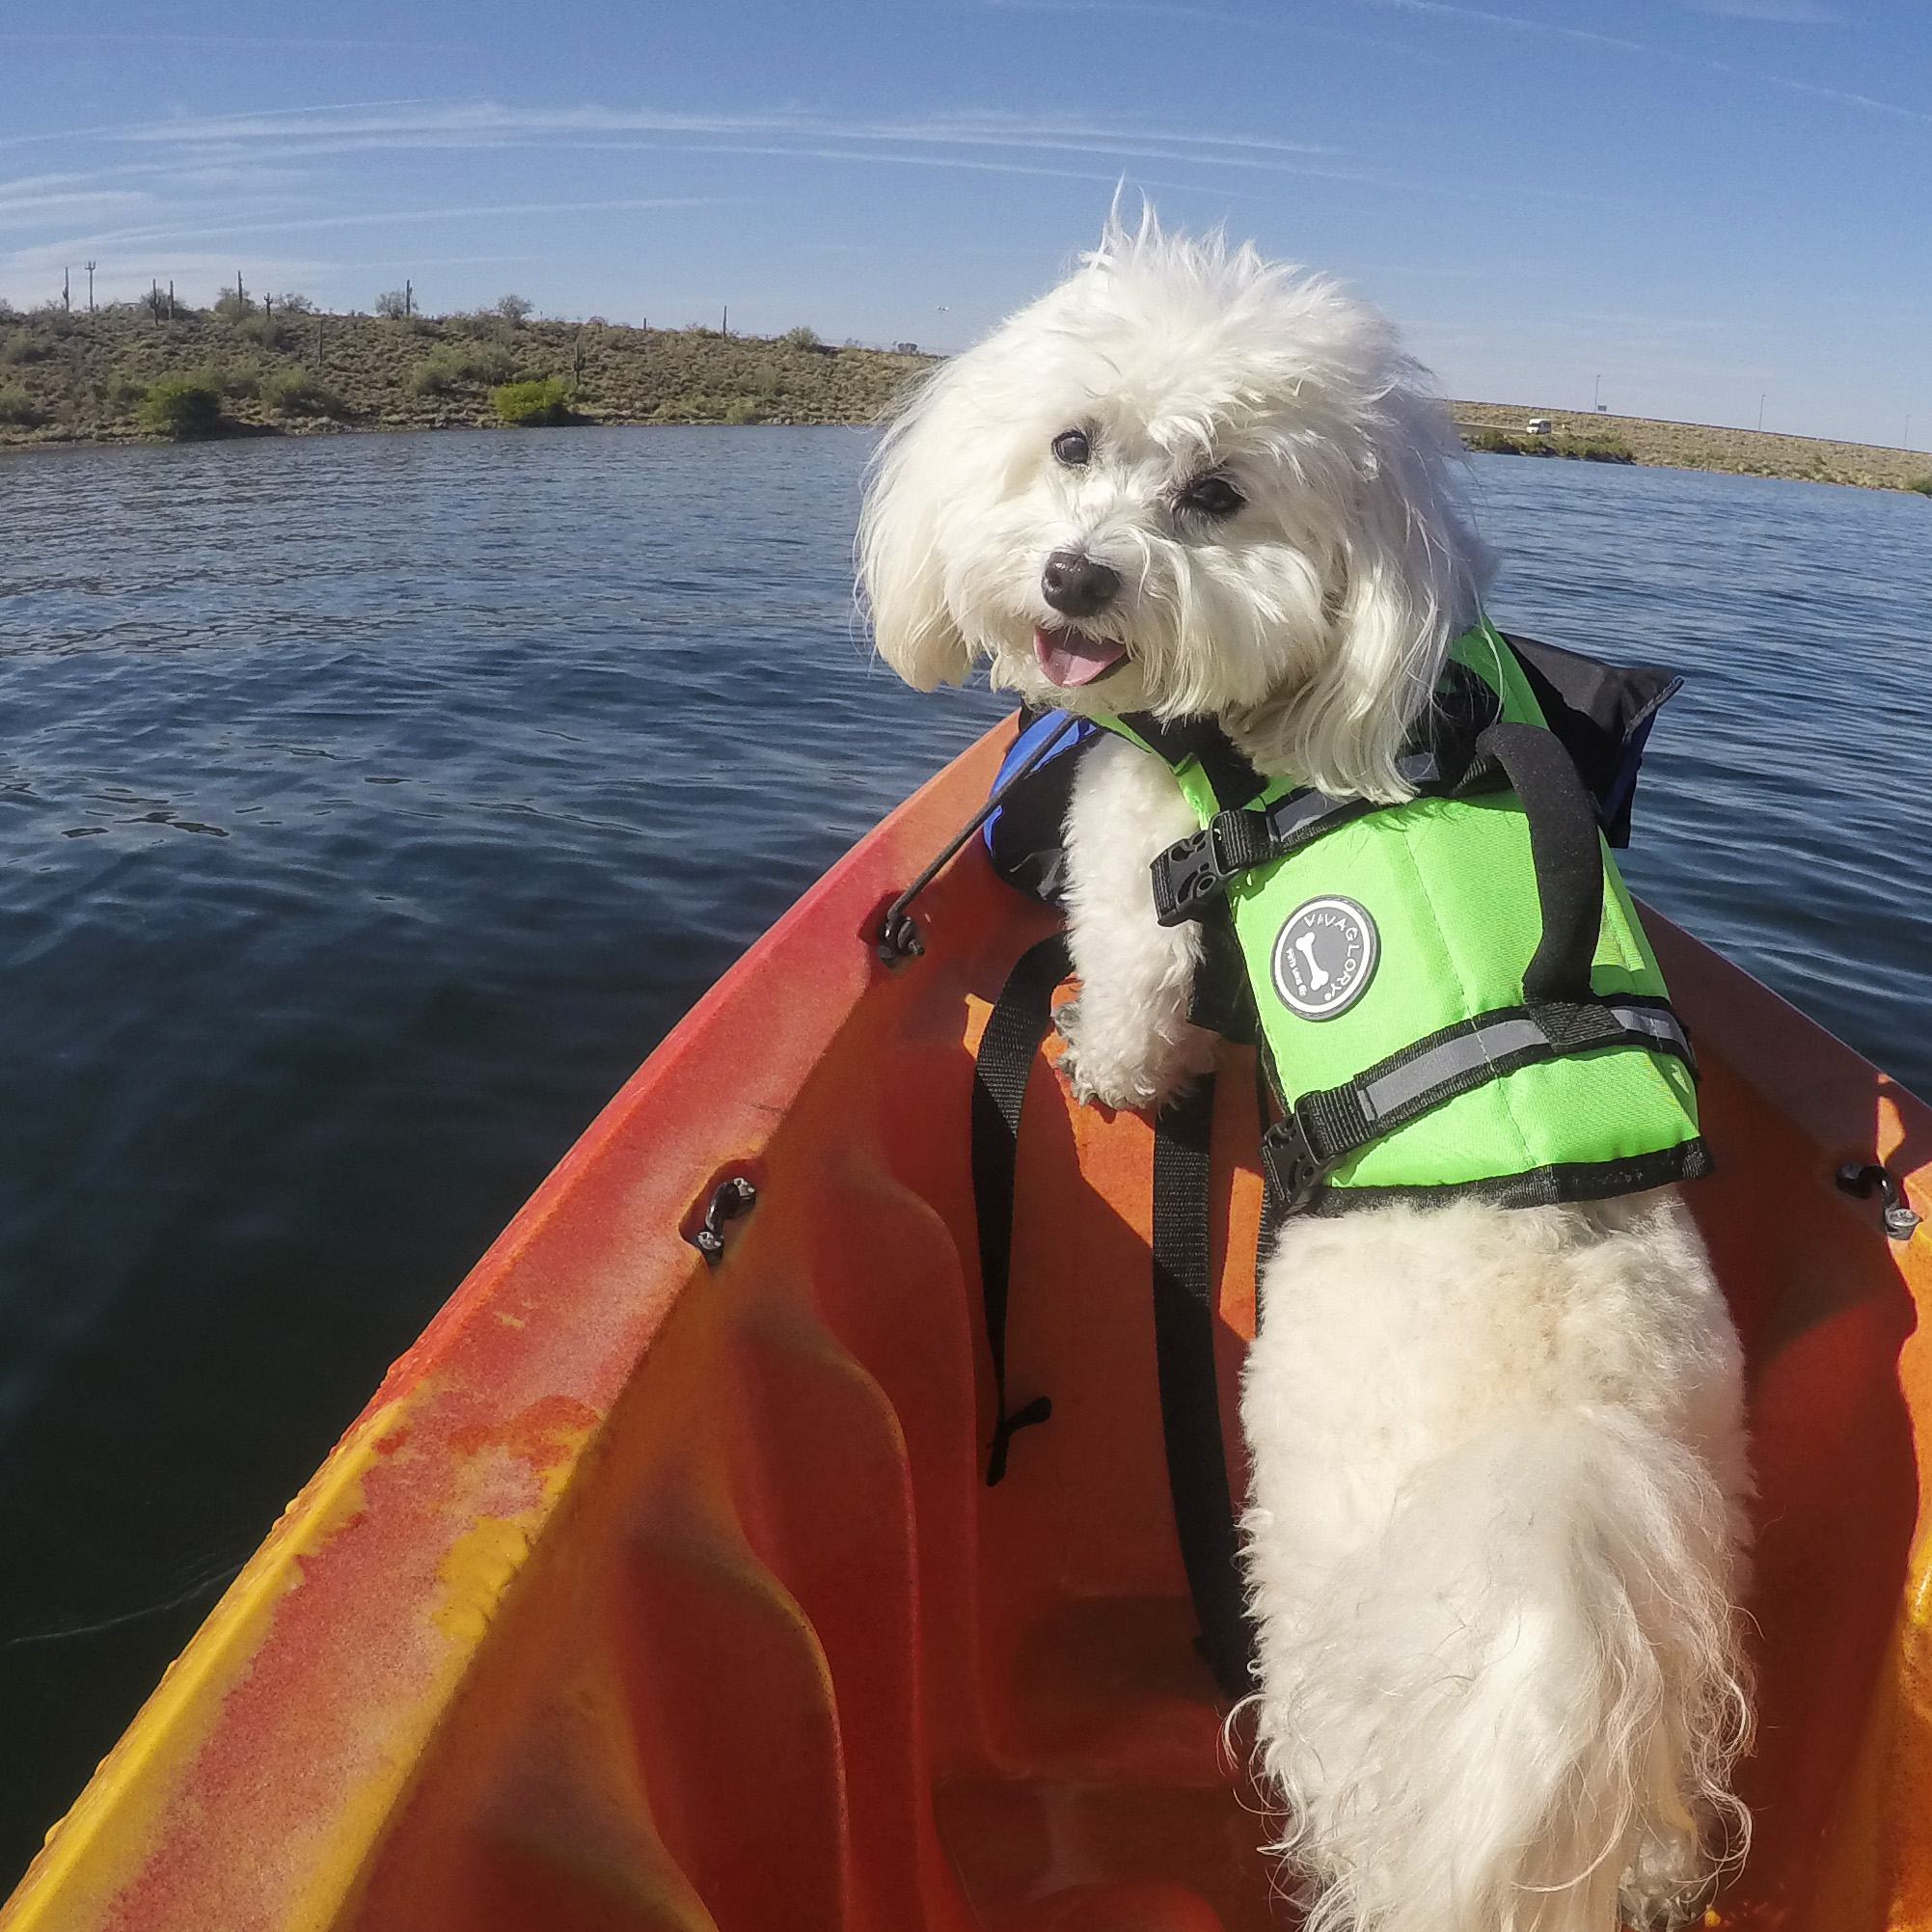 Trust me, I know which way to go. I was born to be on the water!